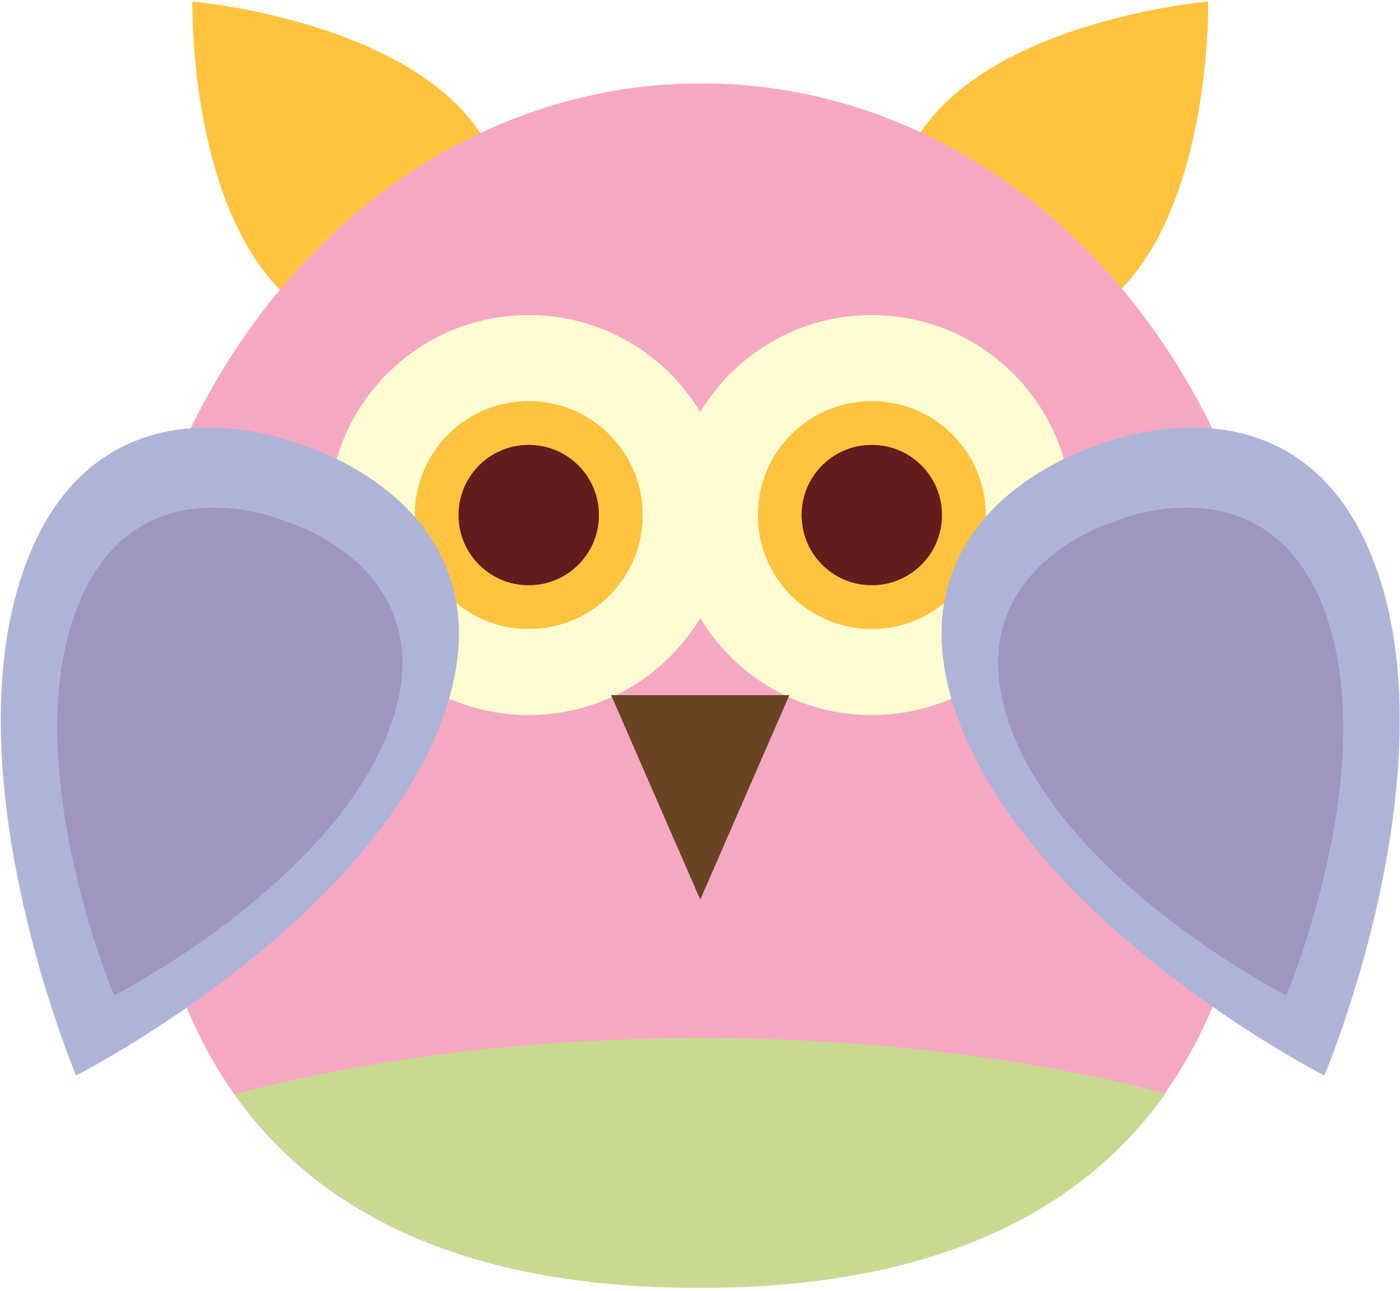 Free revidevi wordpress com. Clipart cupcake owl